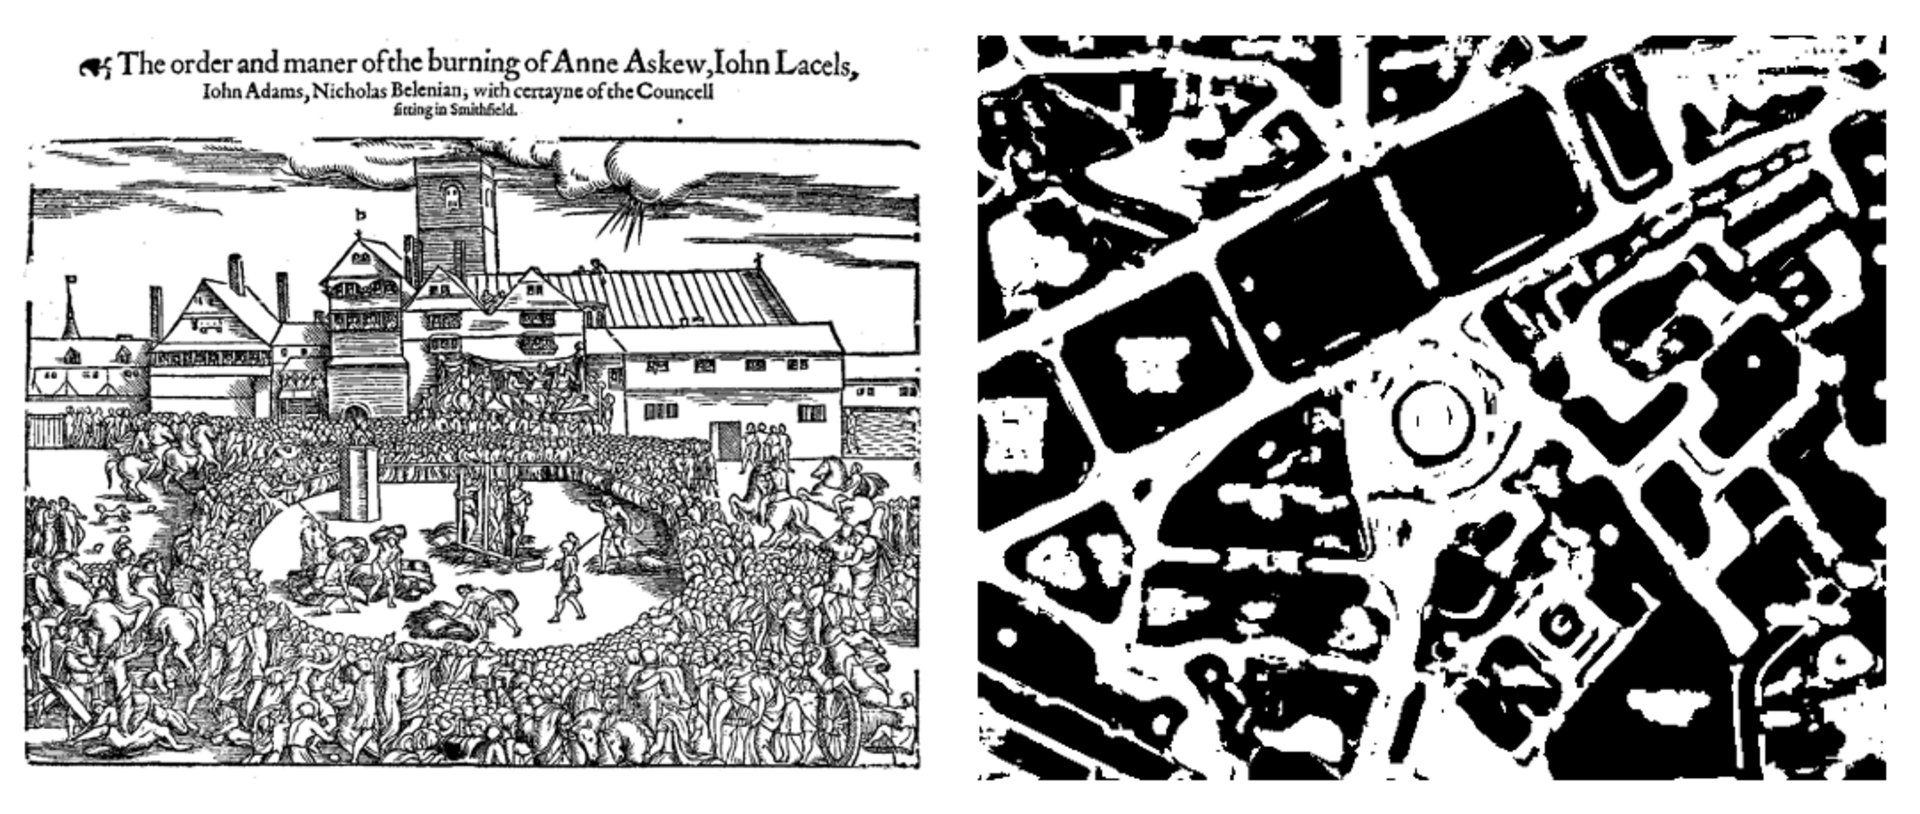 Visual Echoes: Place of Anne Askew's execution